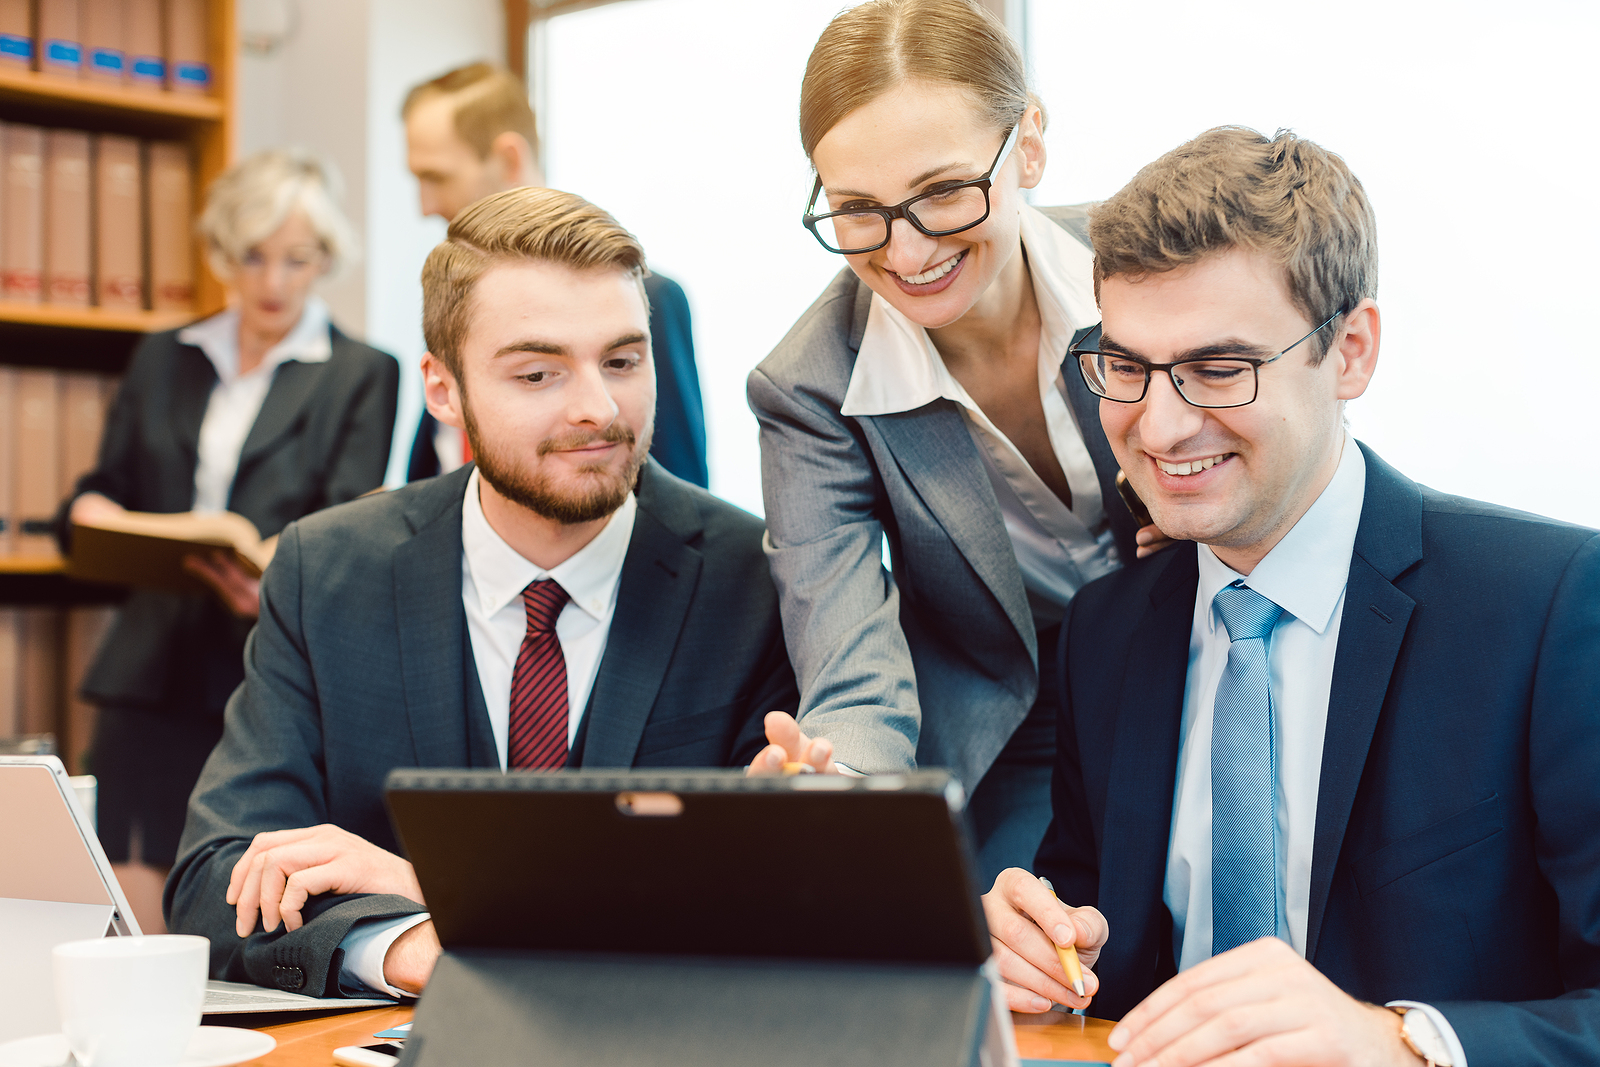 Running a Law Firm: 6 Managerial Tips for Success